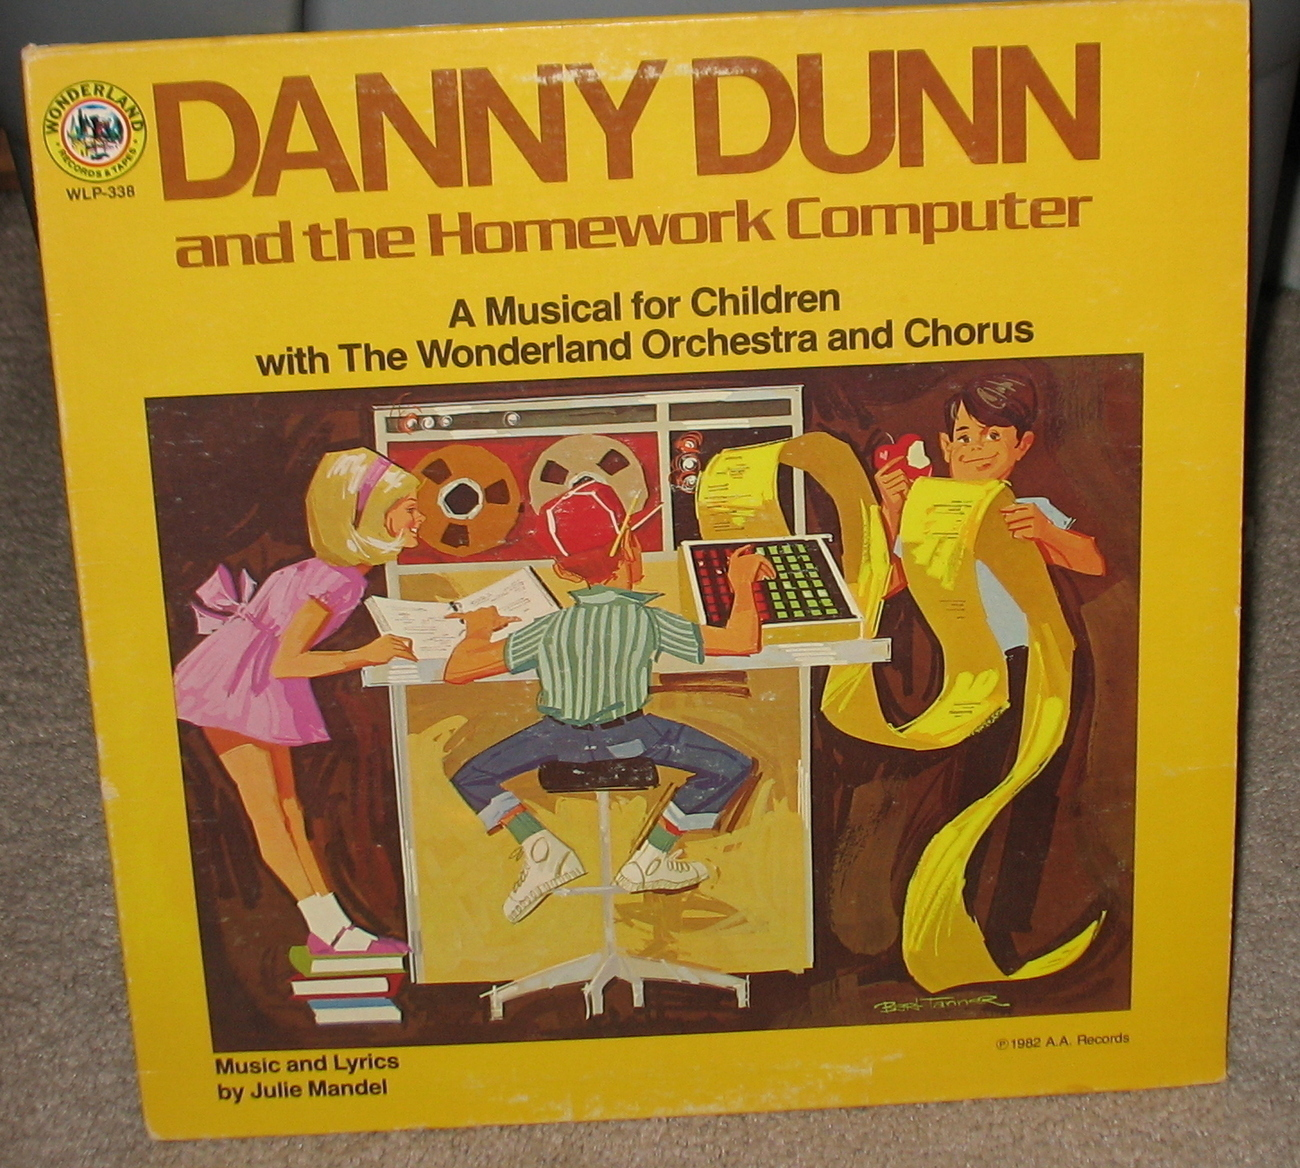 Primary image for Danny Dunn and the Homework Computer LP - WLP 338 -1982